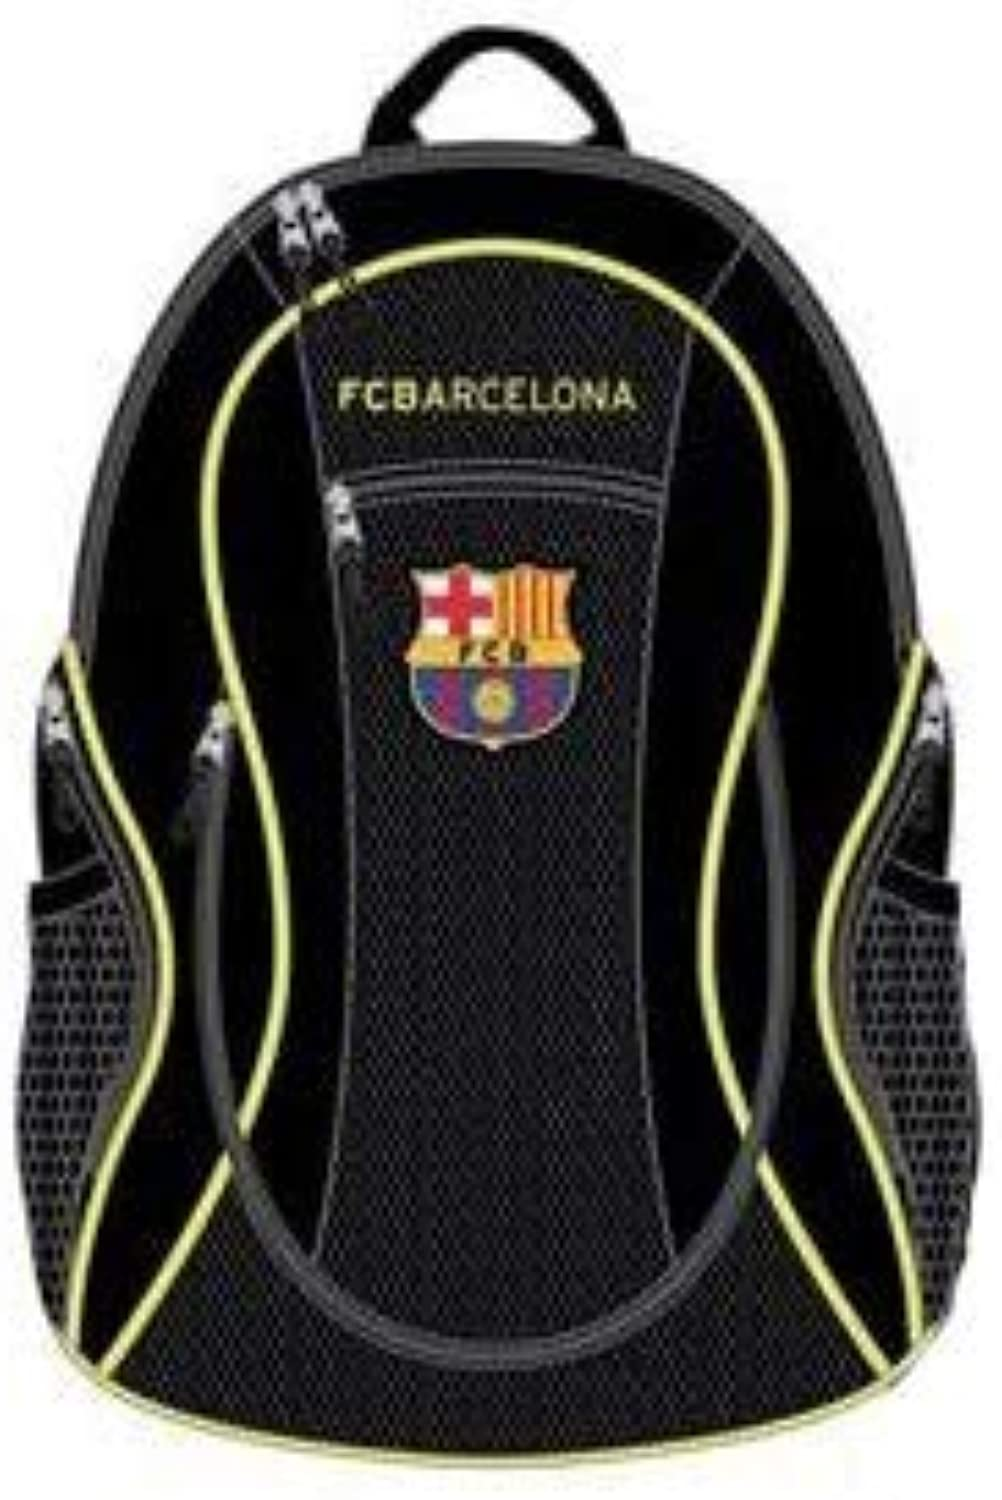 13ca193a7 Large Soccer Backpack Barcelona nydmwf1260-Sporting goods - www ...